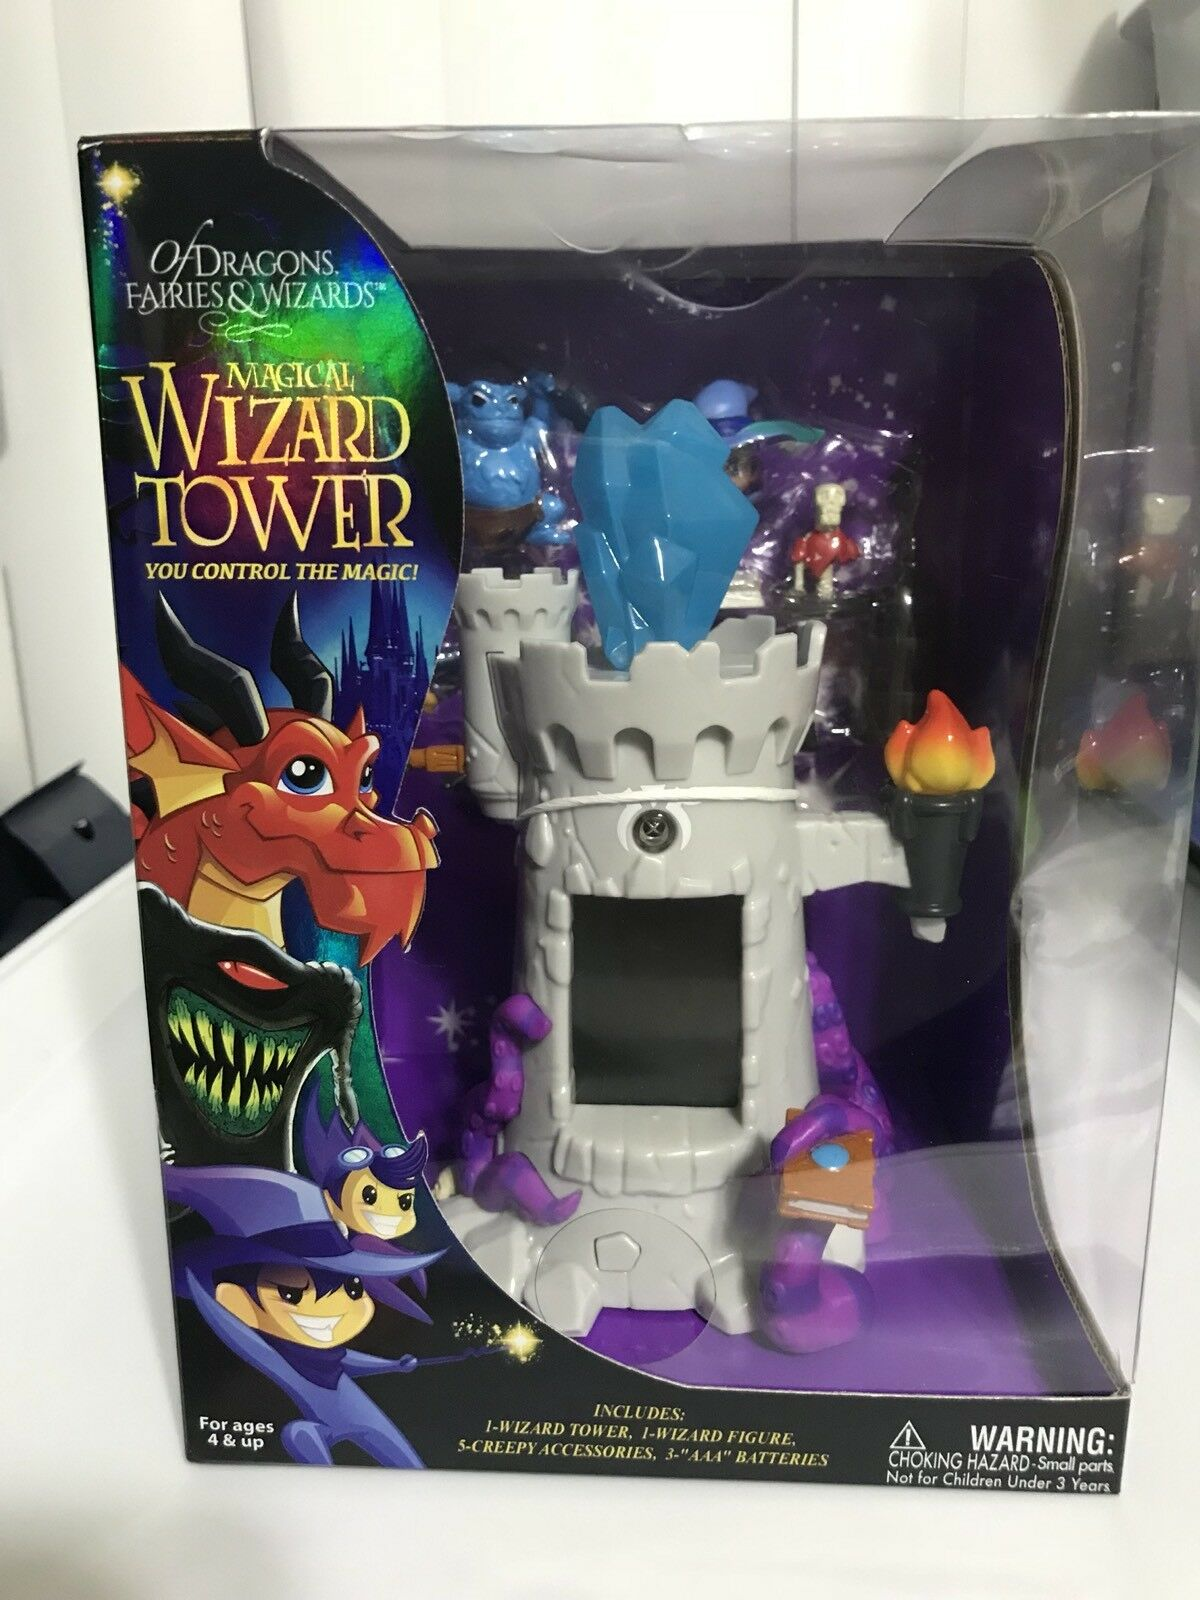 Of Dragons, Faries & Wizards Magical Wizards Grau Tower Playset New